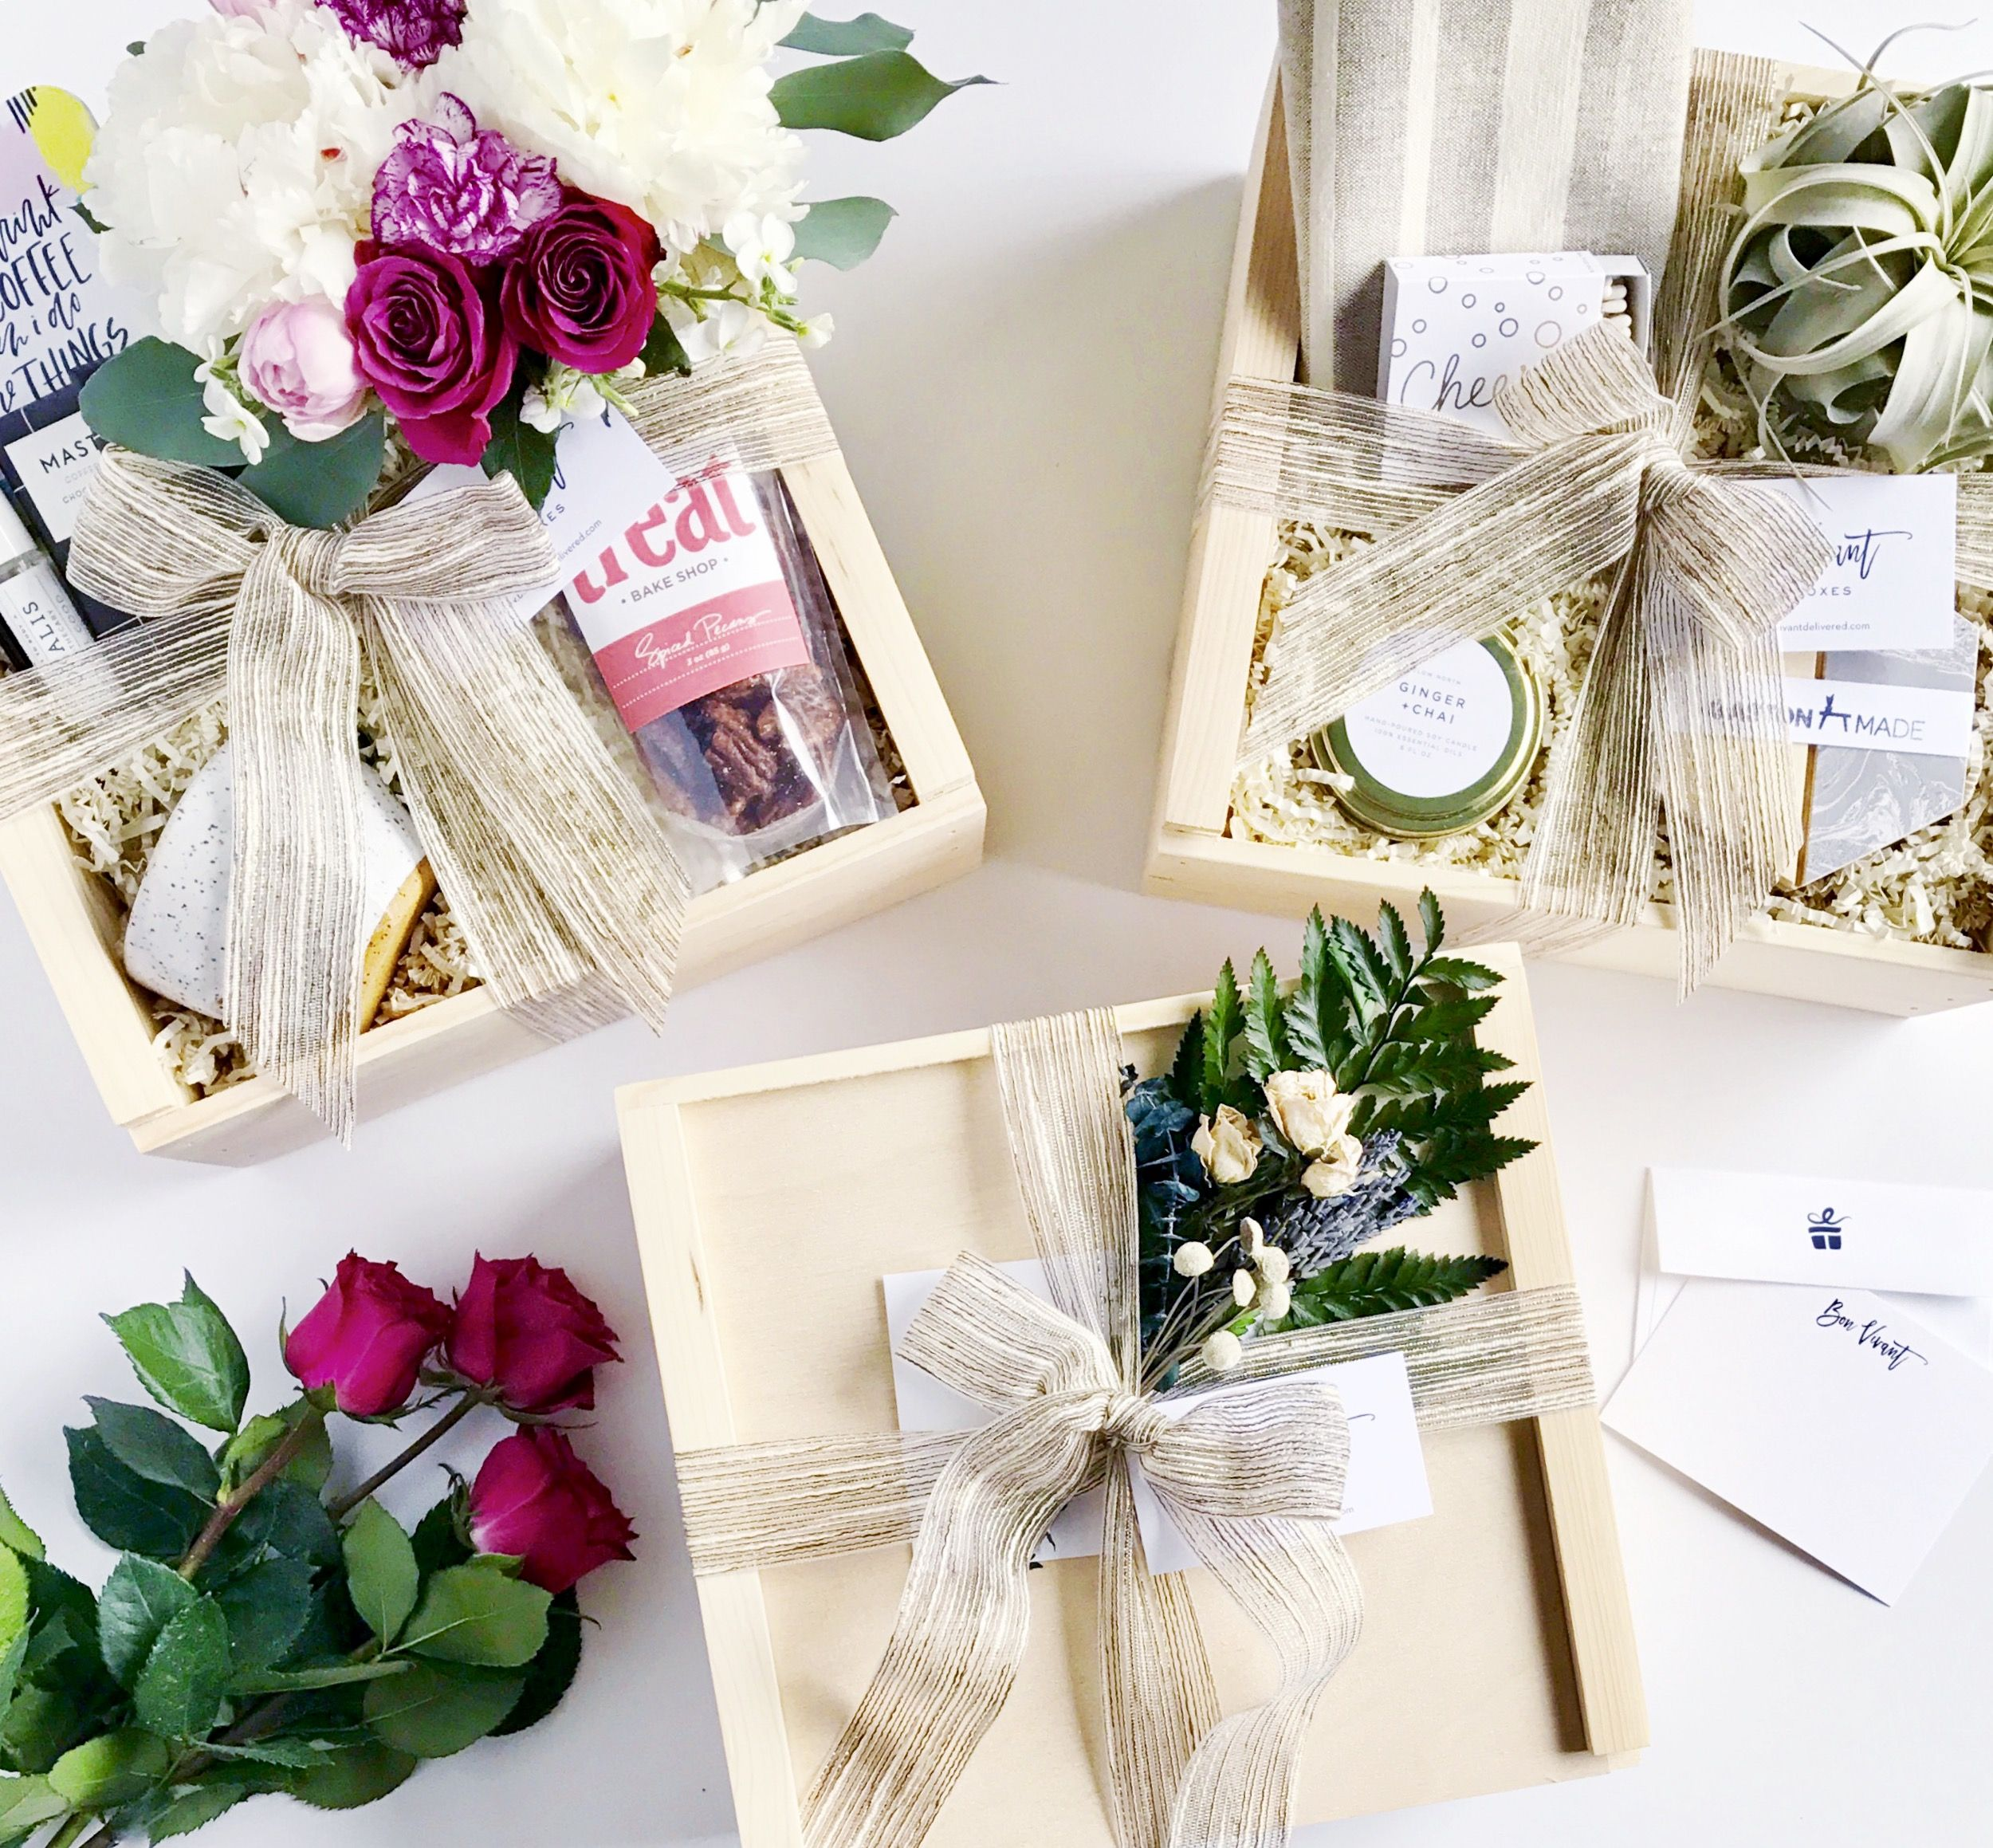 Gift Ideas Gift Boxes Gifts Gifts For Her Diy Gifts Diy